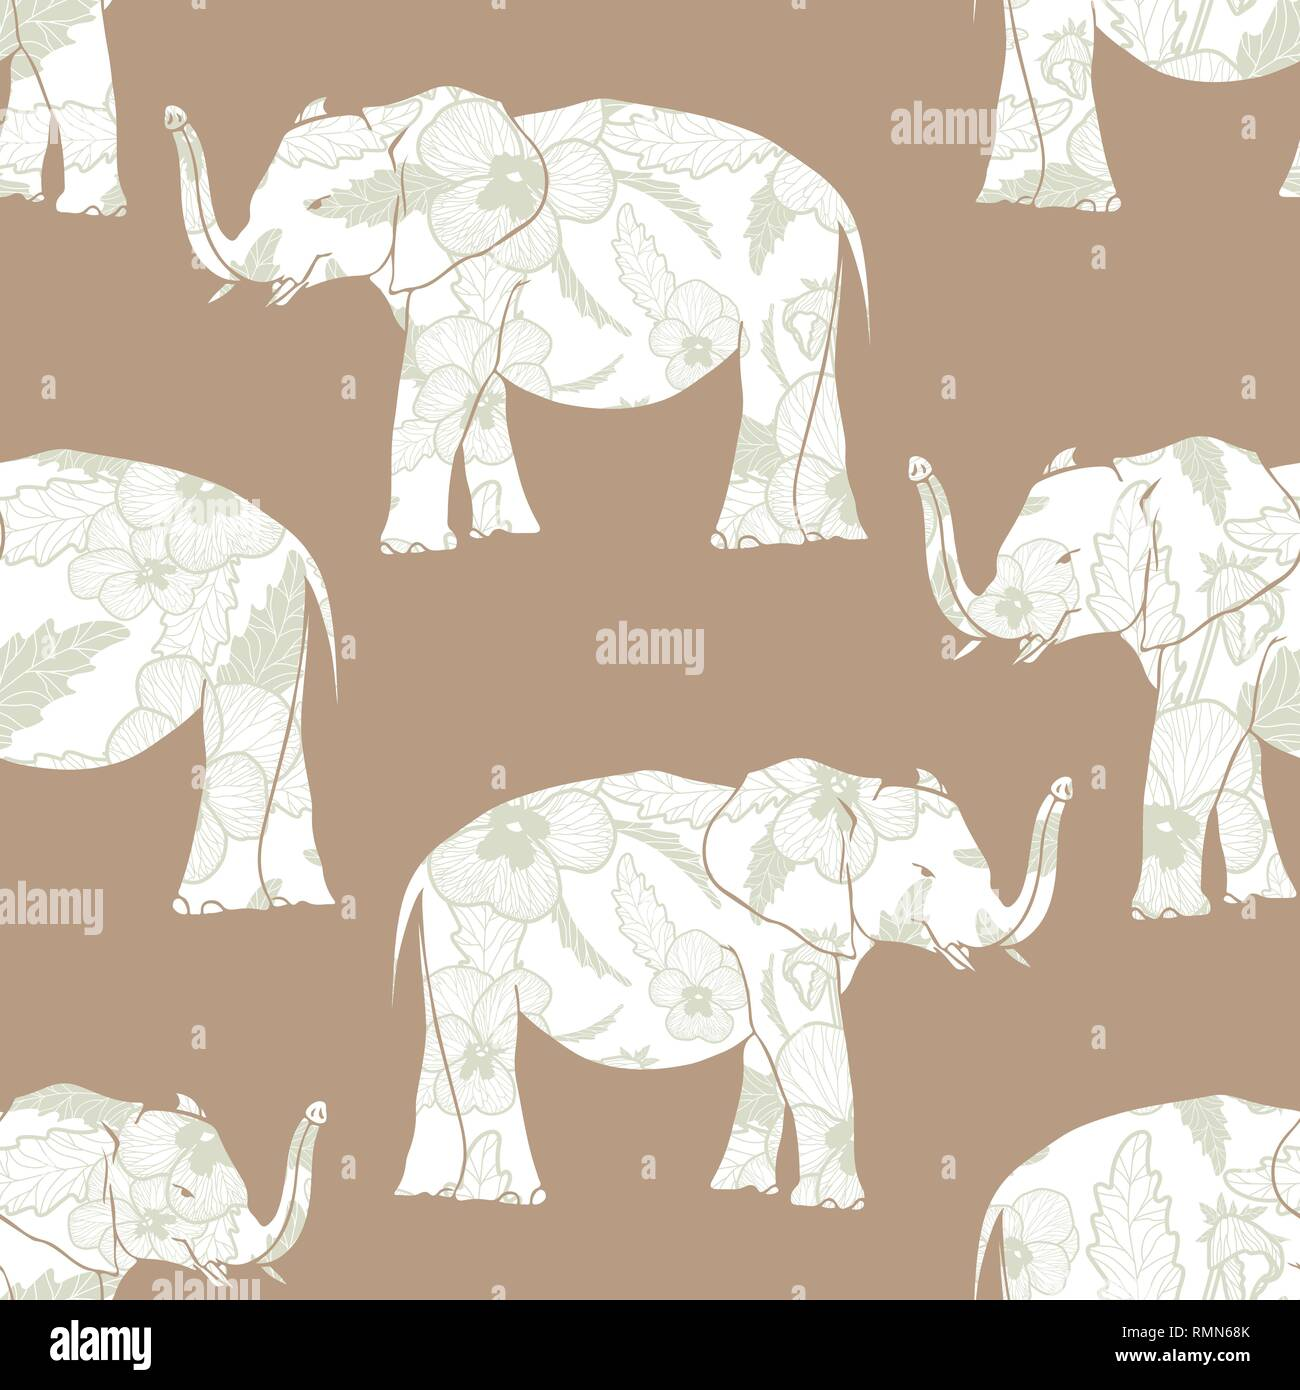 Seamless pattern with hand drawn elephant silhouettes vector illustration. Sage flowers on beige background. - Stock Image